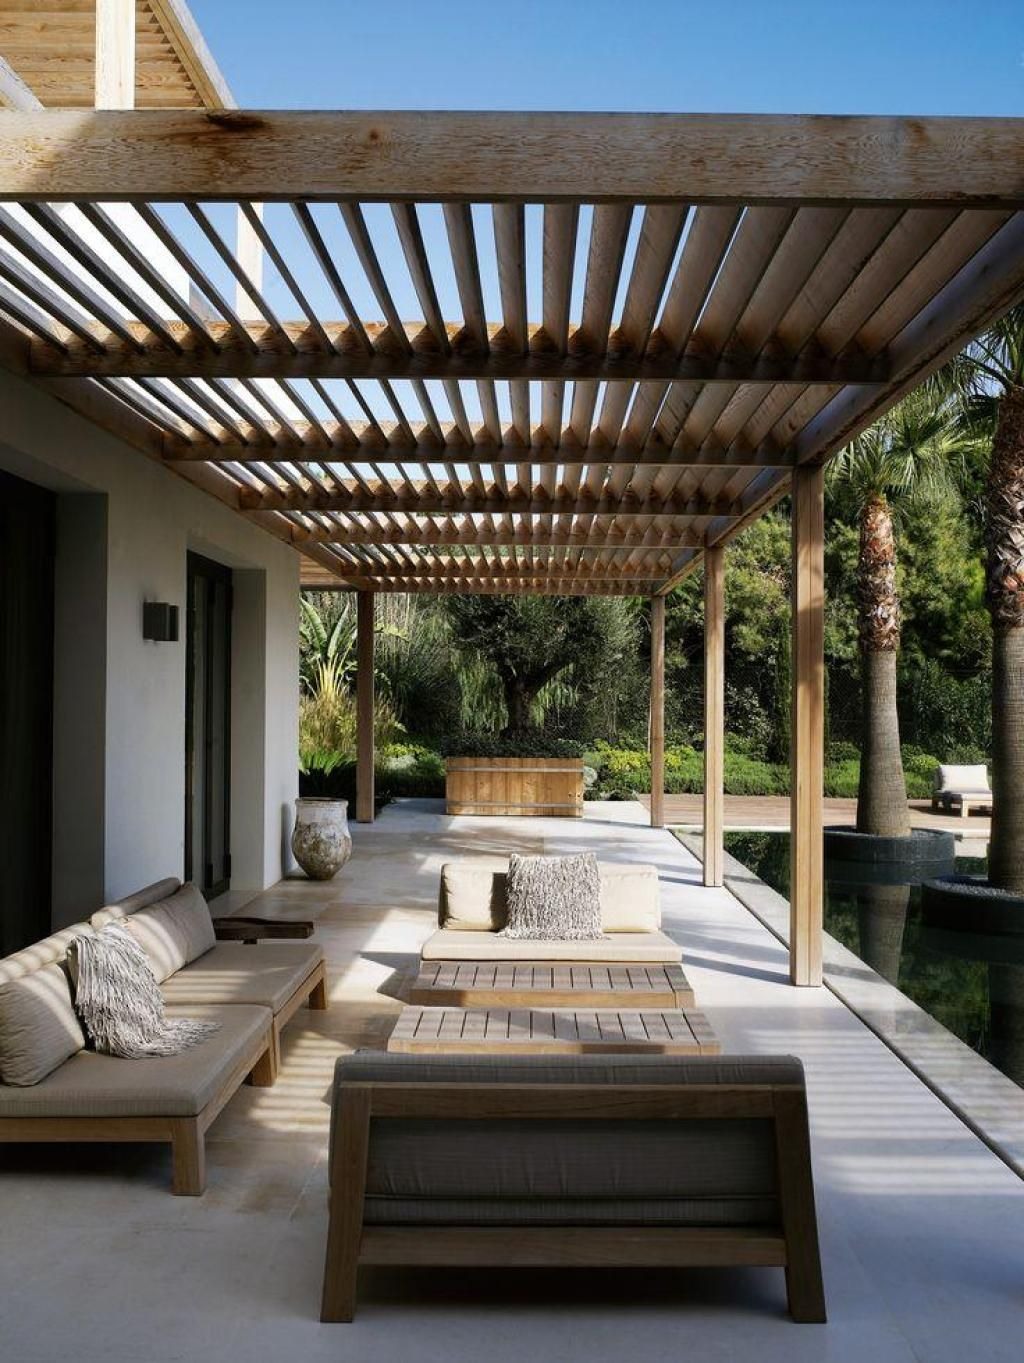 Backyard Long Paio With Wooden Furniture And Sunspot At